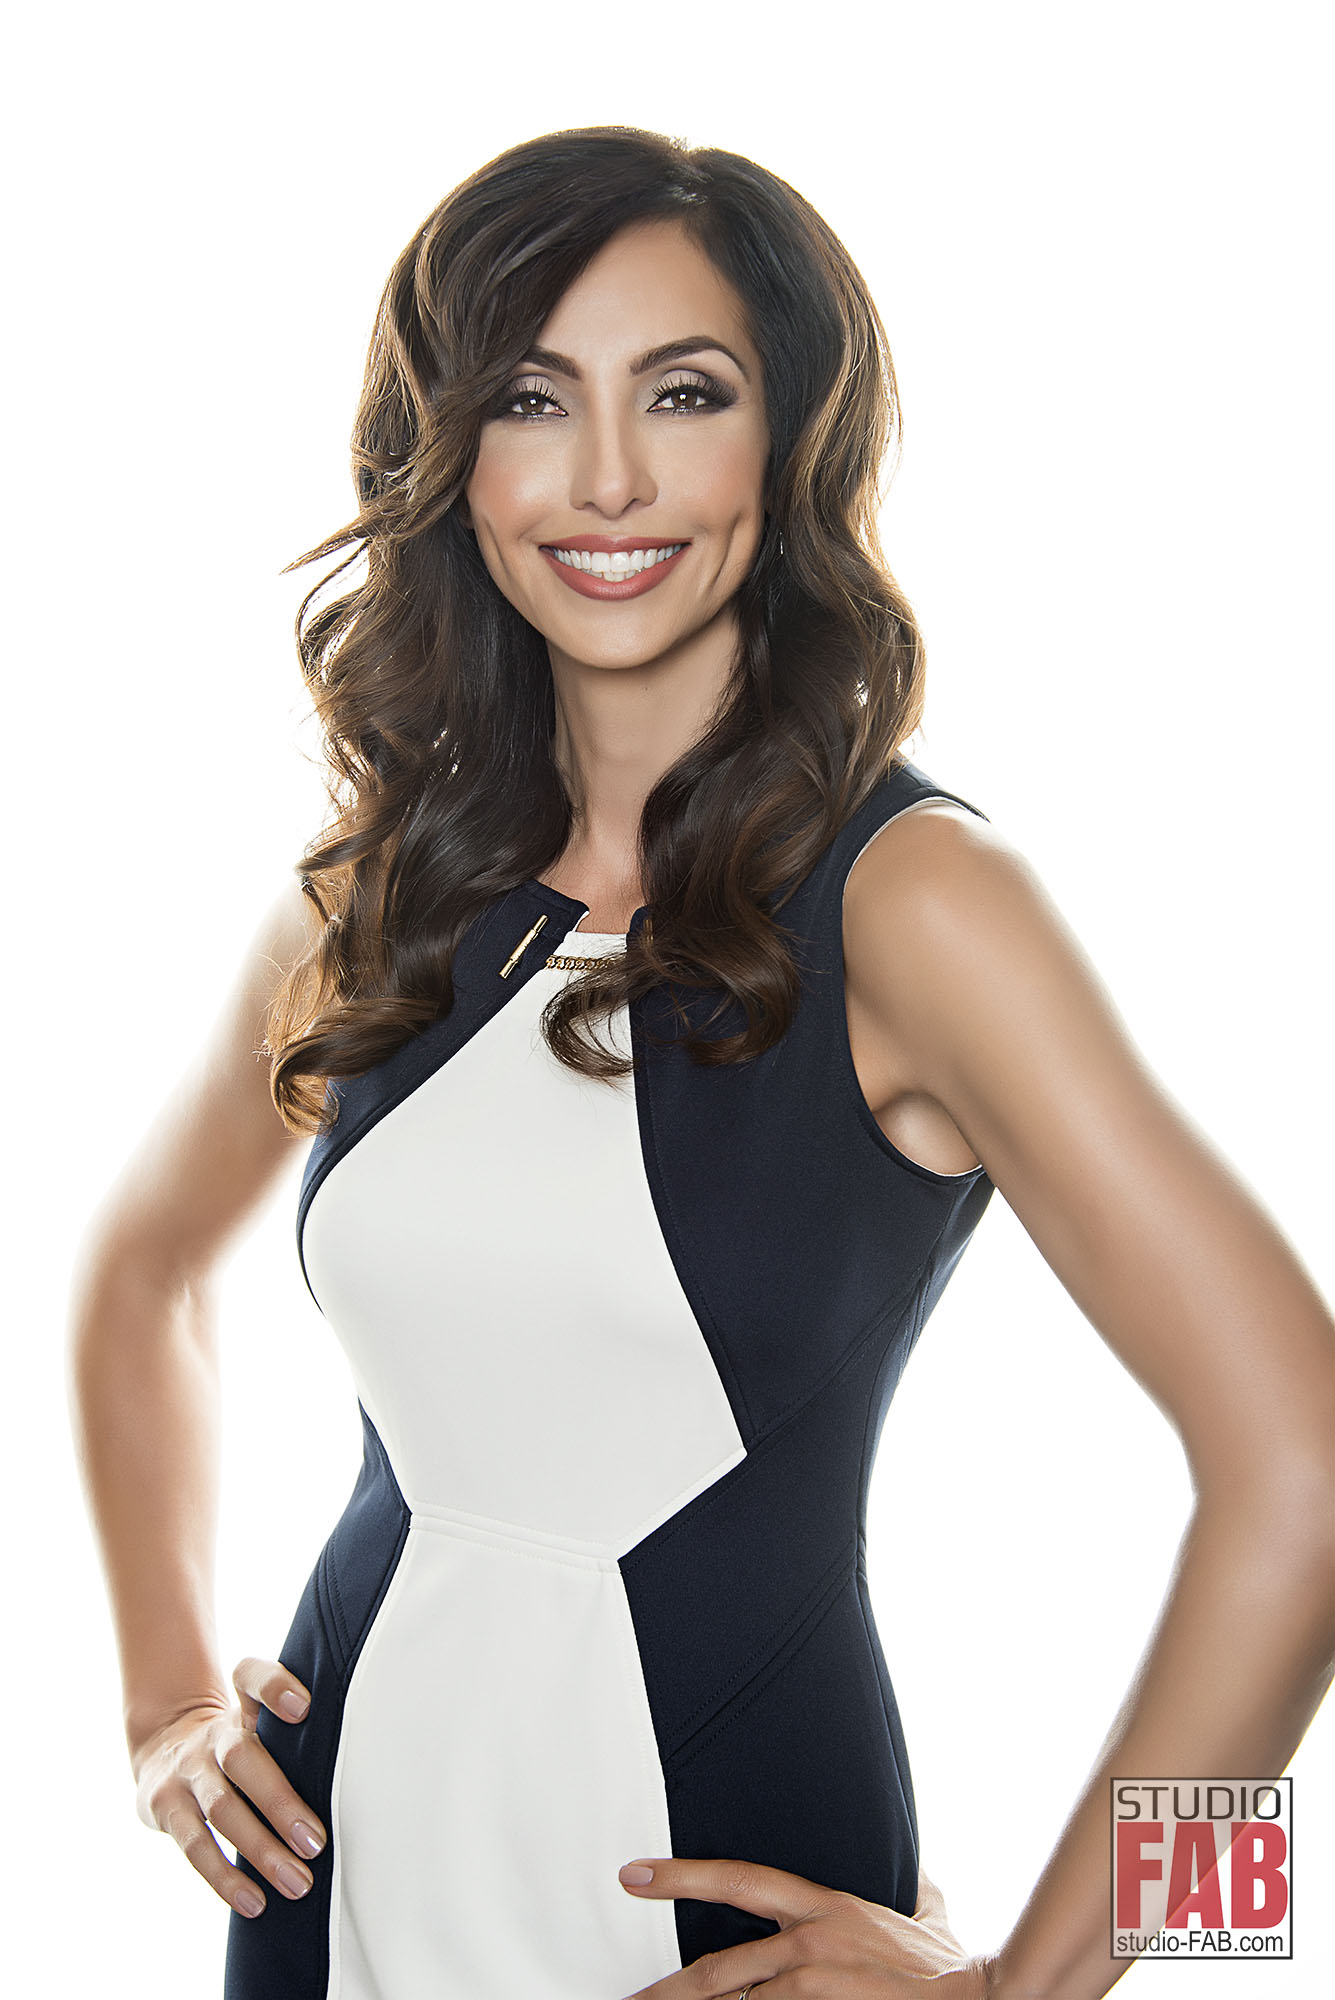 Rosemary Orozco ktvu news by Leon Saperstein-5908 (web)